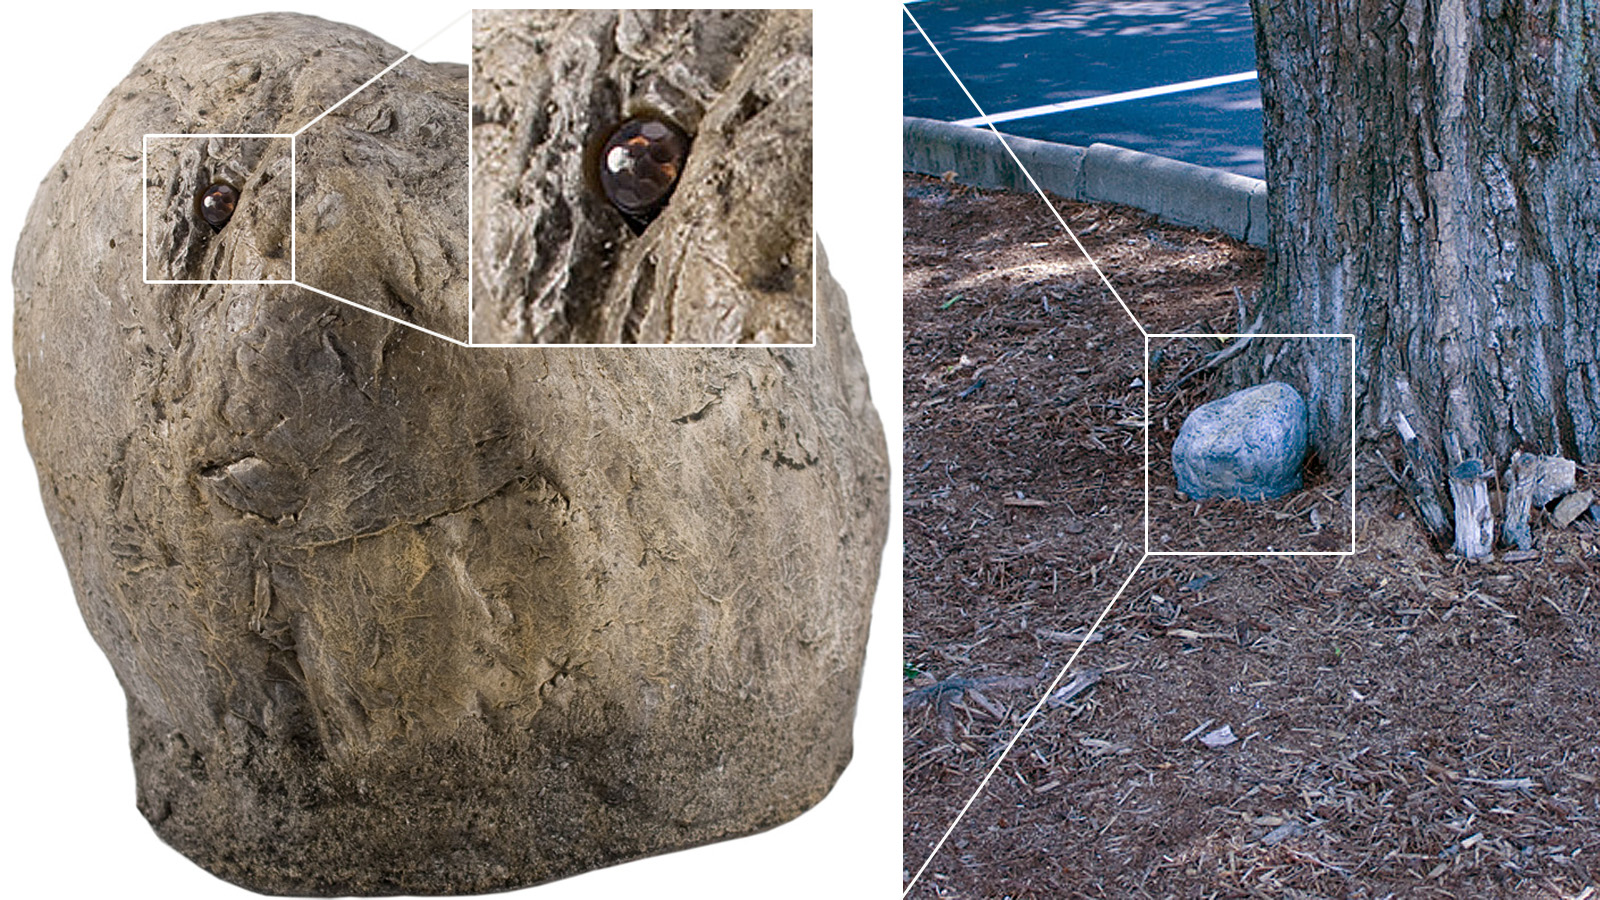 Rock Camera Surveillance : 13 hidden spy cameras that could be watching you right now gizmodo